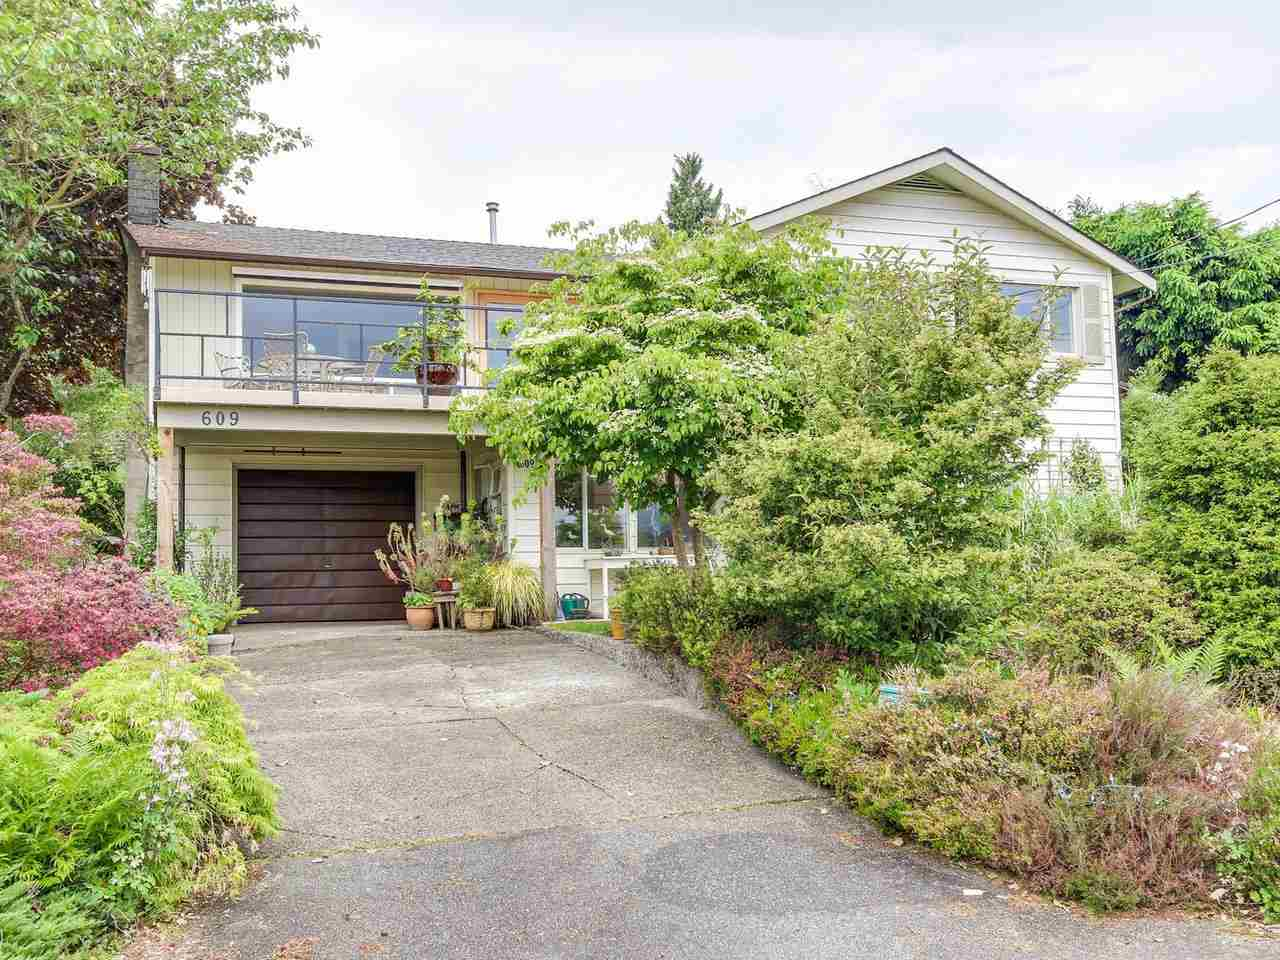 609 BAYCREST DRIVE, North Vancouver, BC, V7G 1N7 Photo 1